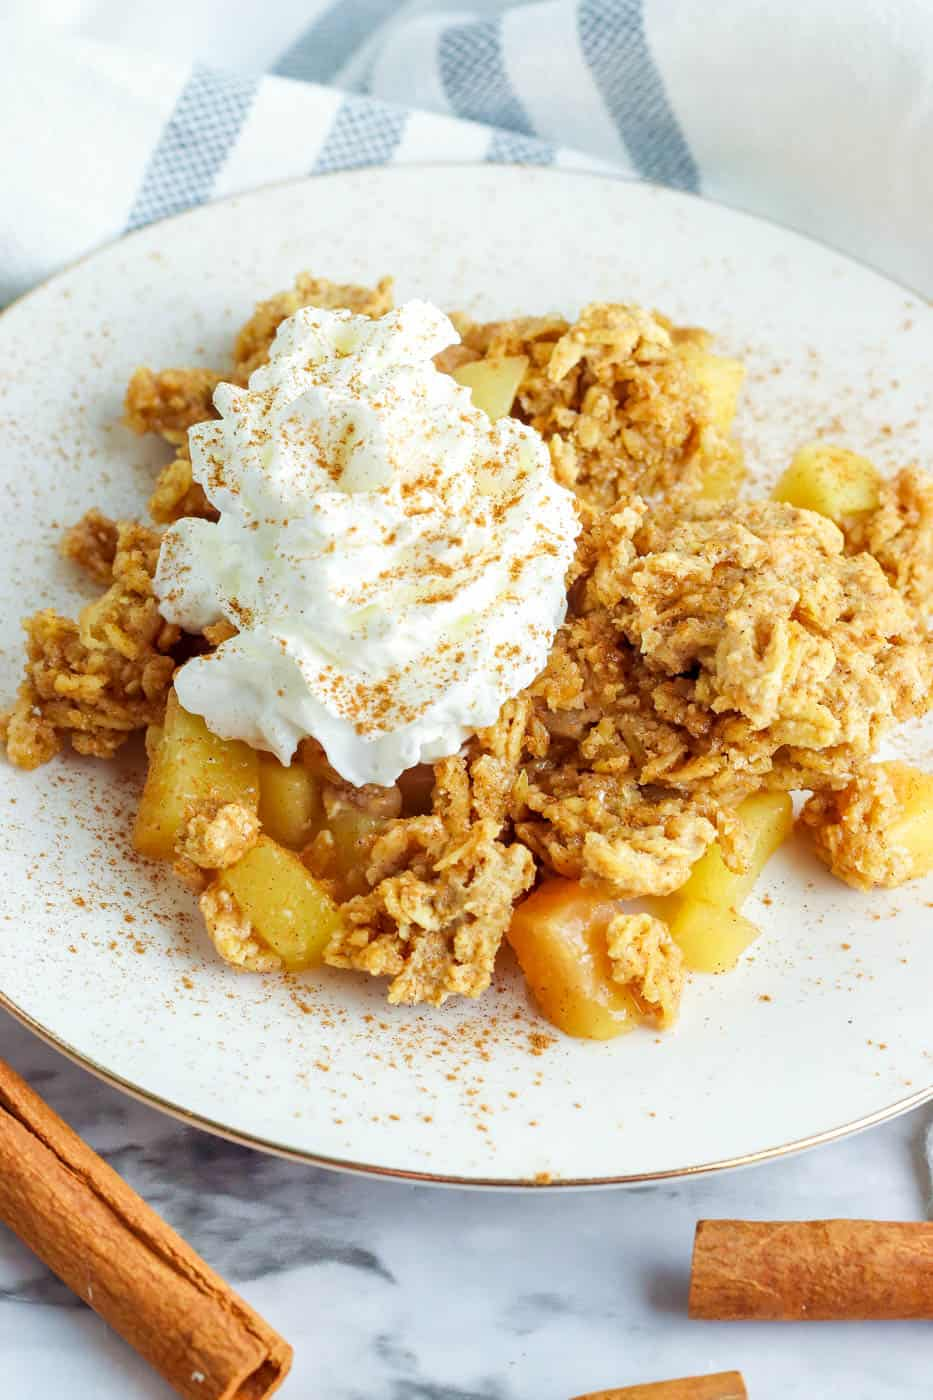 gluten free apple crisp served on a white plate topped with whipped cream